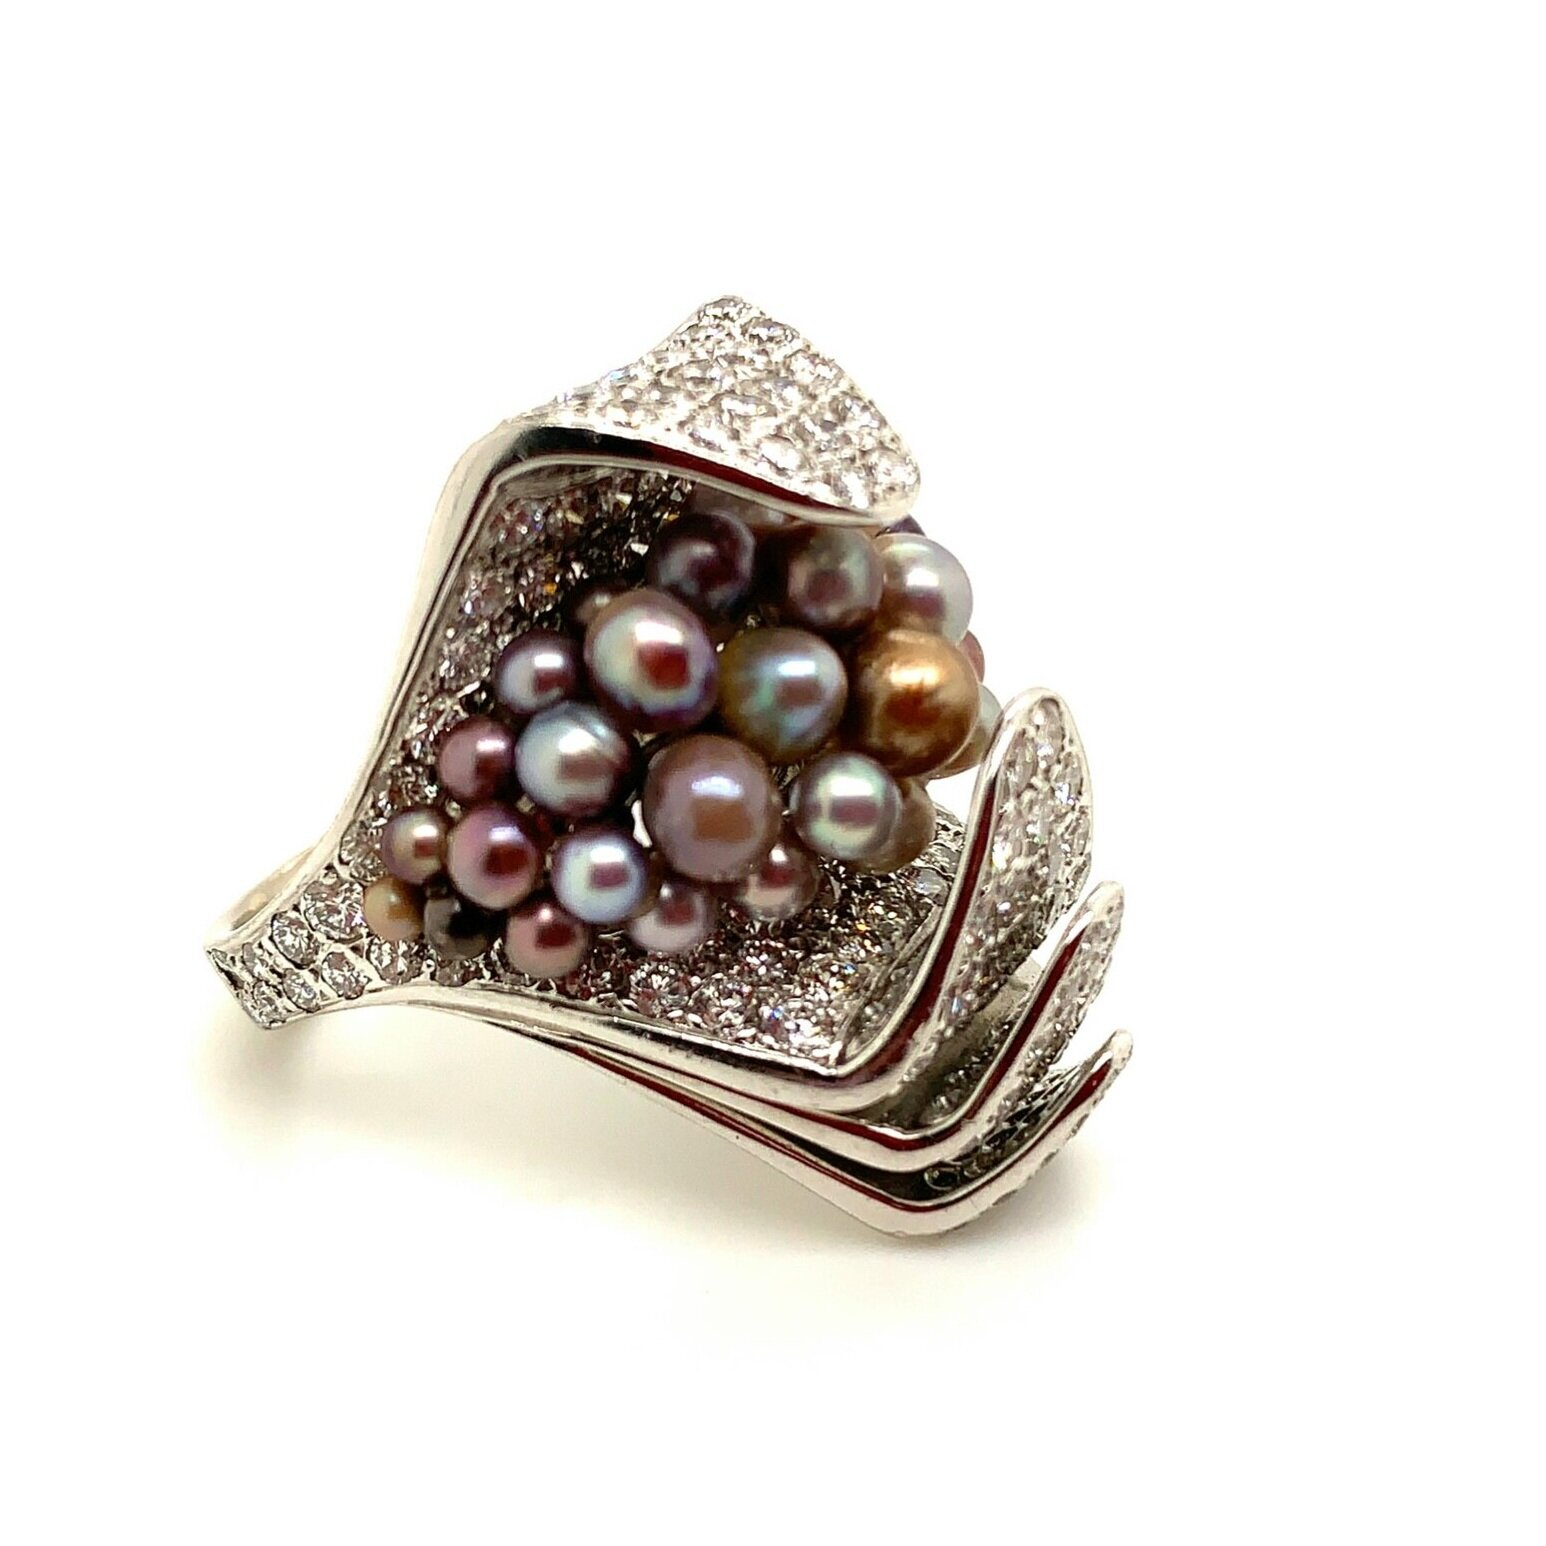 18K WG Natural Color Natural Pearl and Diamond Ring   Est. US$ 10,000-12,000